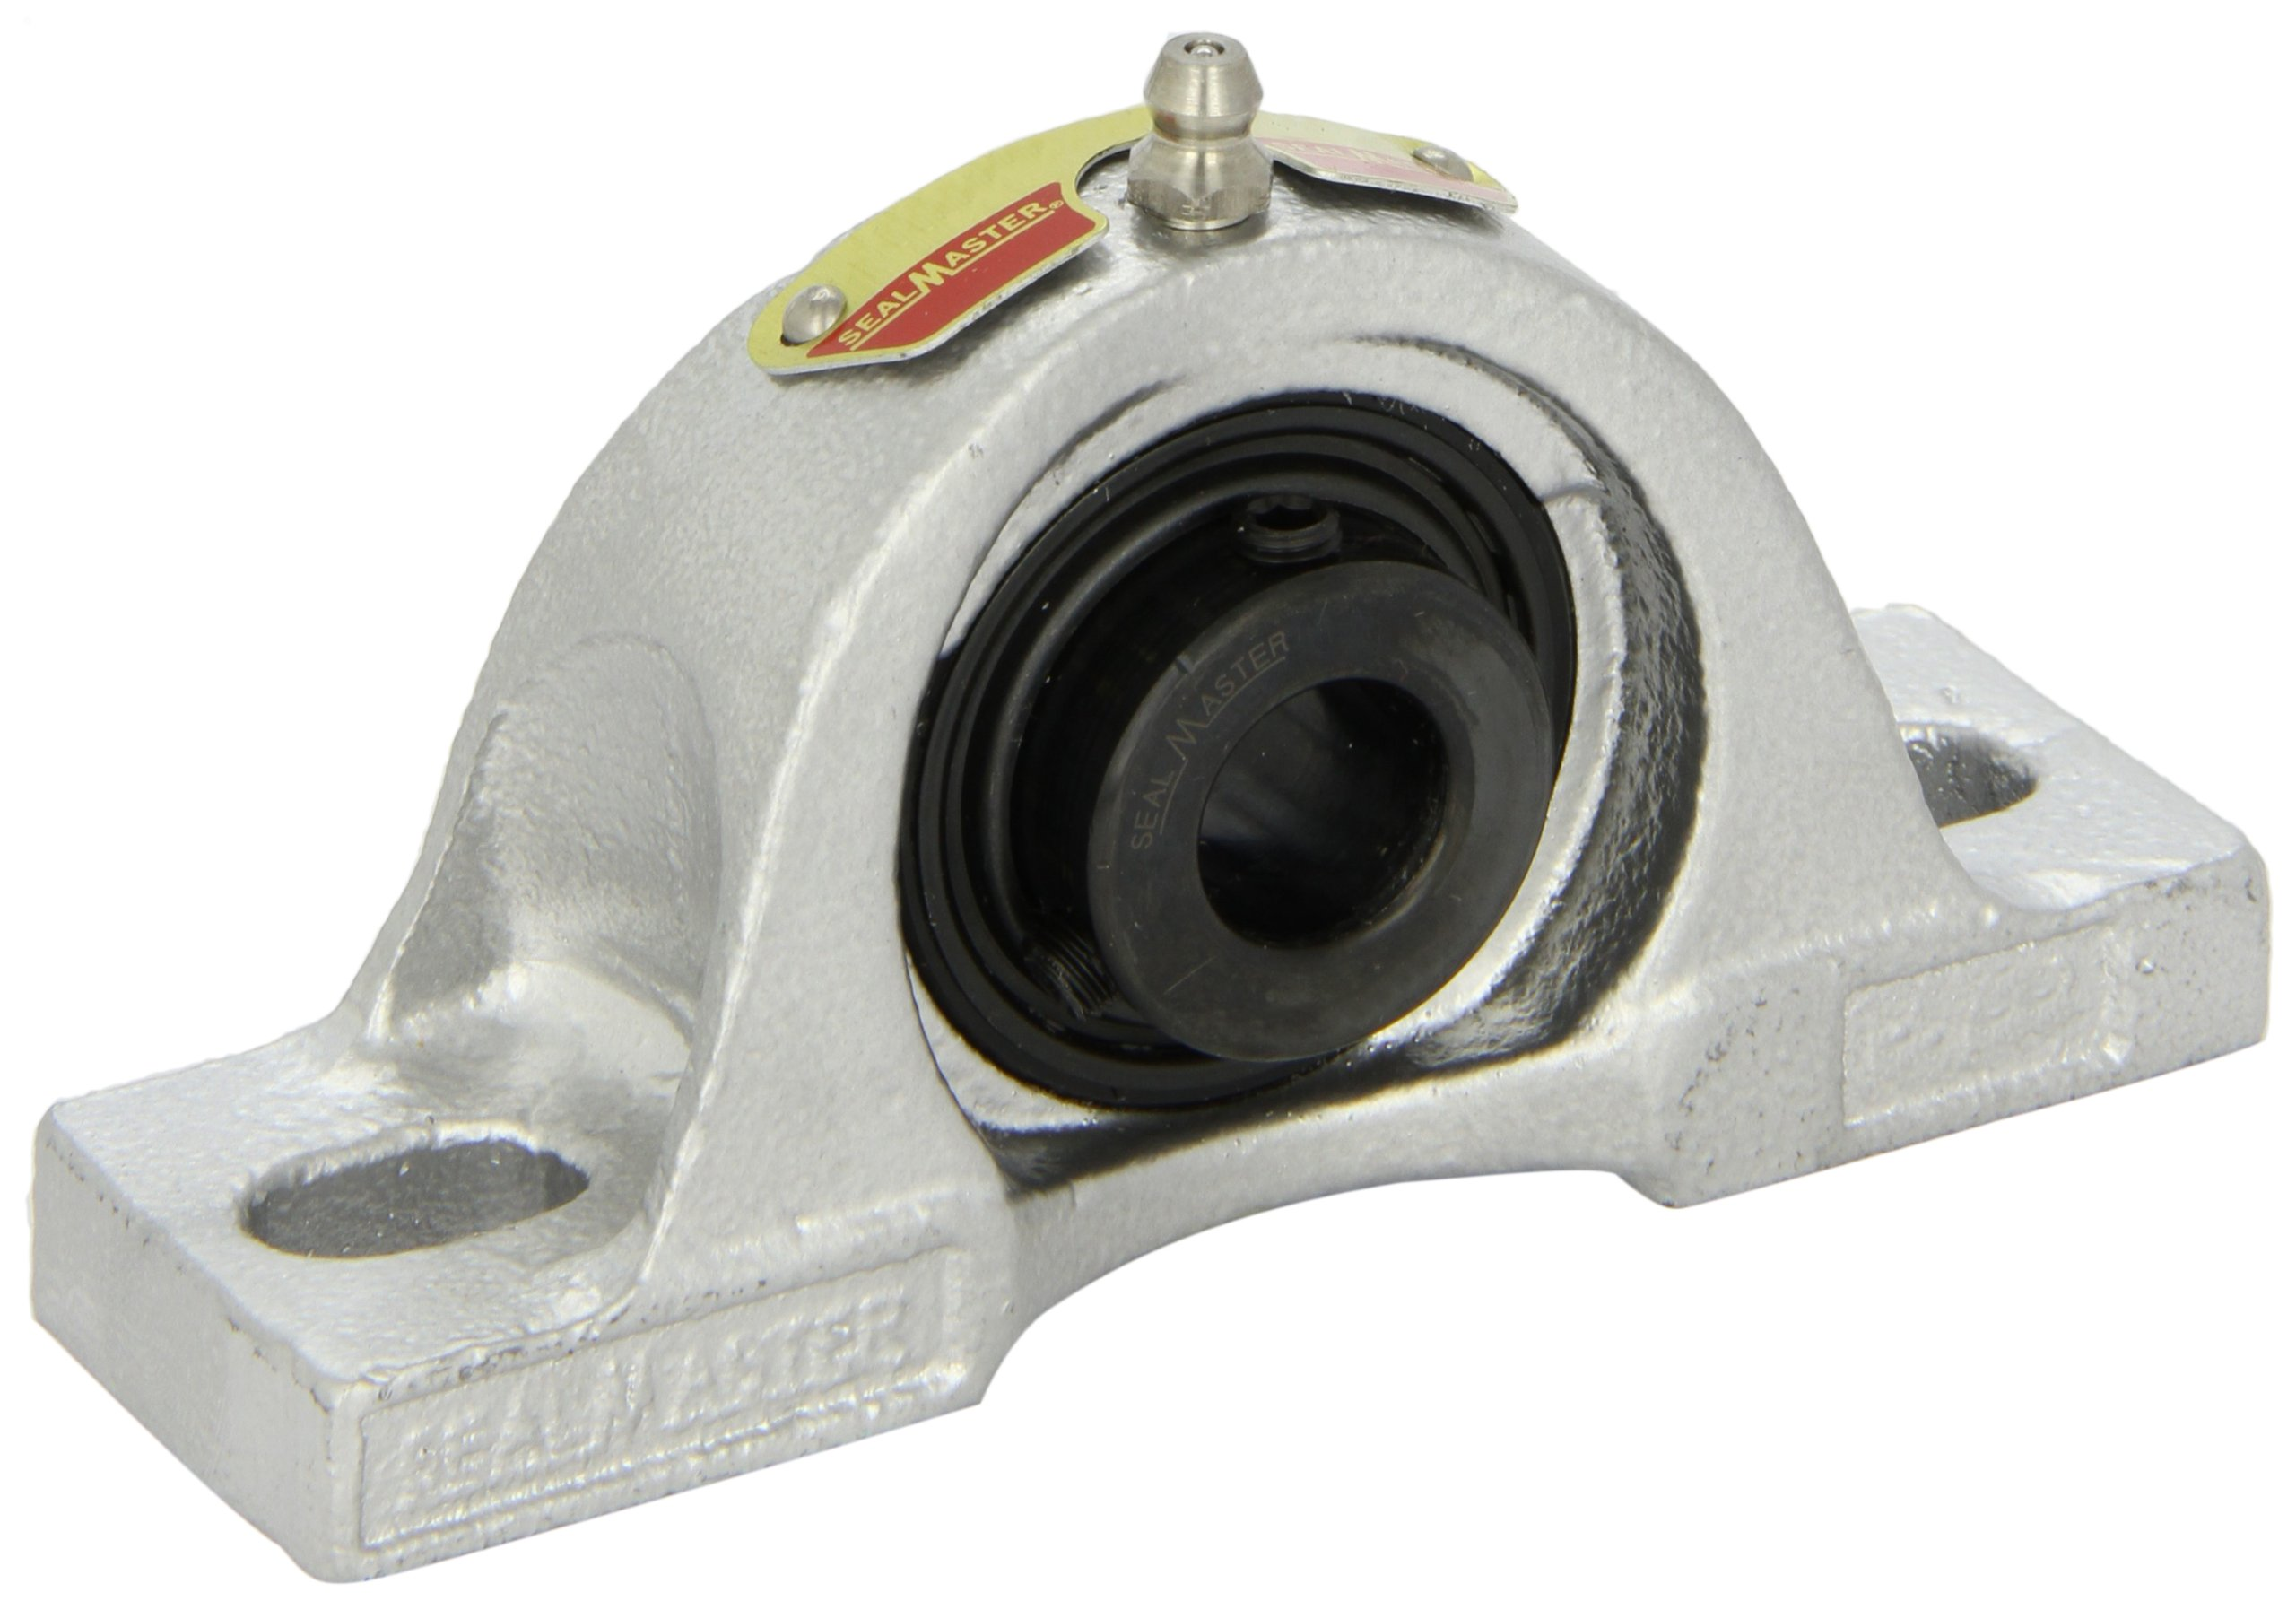 Sealmaster NP-32C CR Pillow Block Ball Bearing, Non-Expansion Type, Corrosion Resistant-Duty, Regreasable, Setscrew Locking Collar, Contact Seals, 316 Stainless Steel Housing, 2'' Bore, 2-1/2'' Base to Center Height, 6-3/4'' Bolt Hole Spacing Width